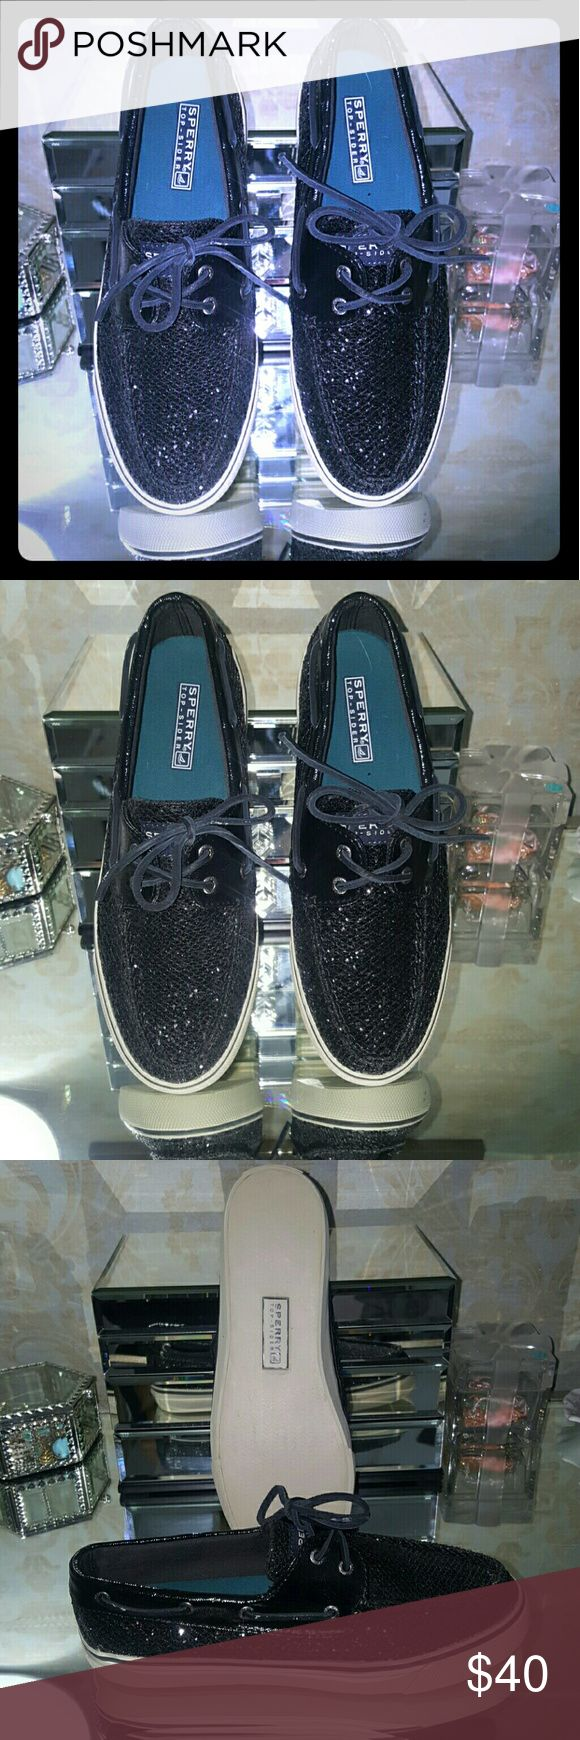 NWOT Sparkling Sperry Topsiders Brand new Never worn! Black Sperry Boat Shoes with leather laces. Sperry Top-Sider Shoes